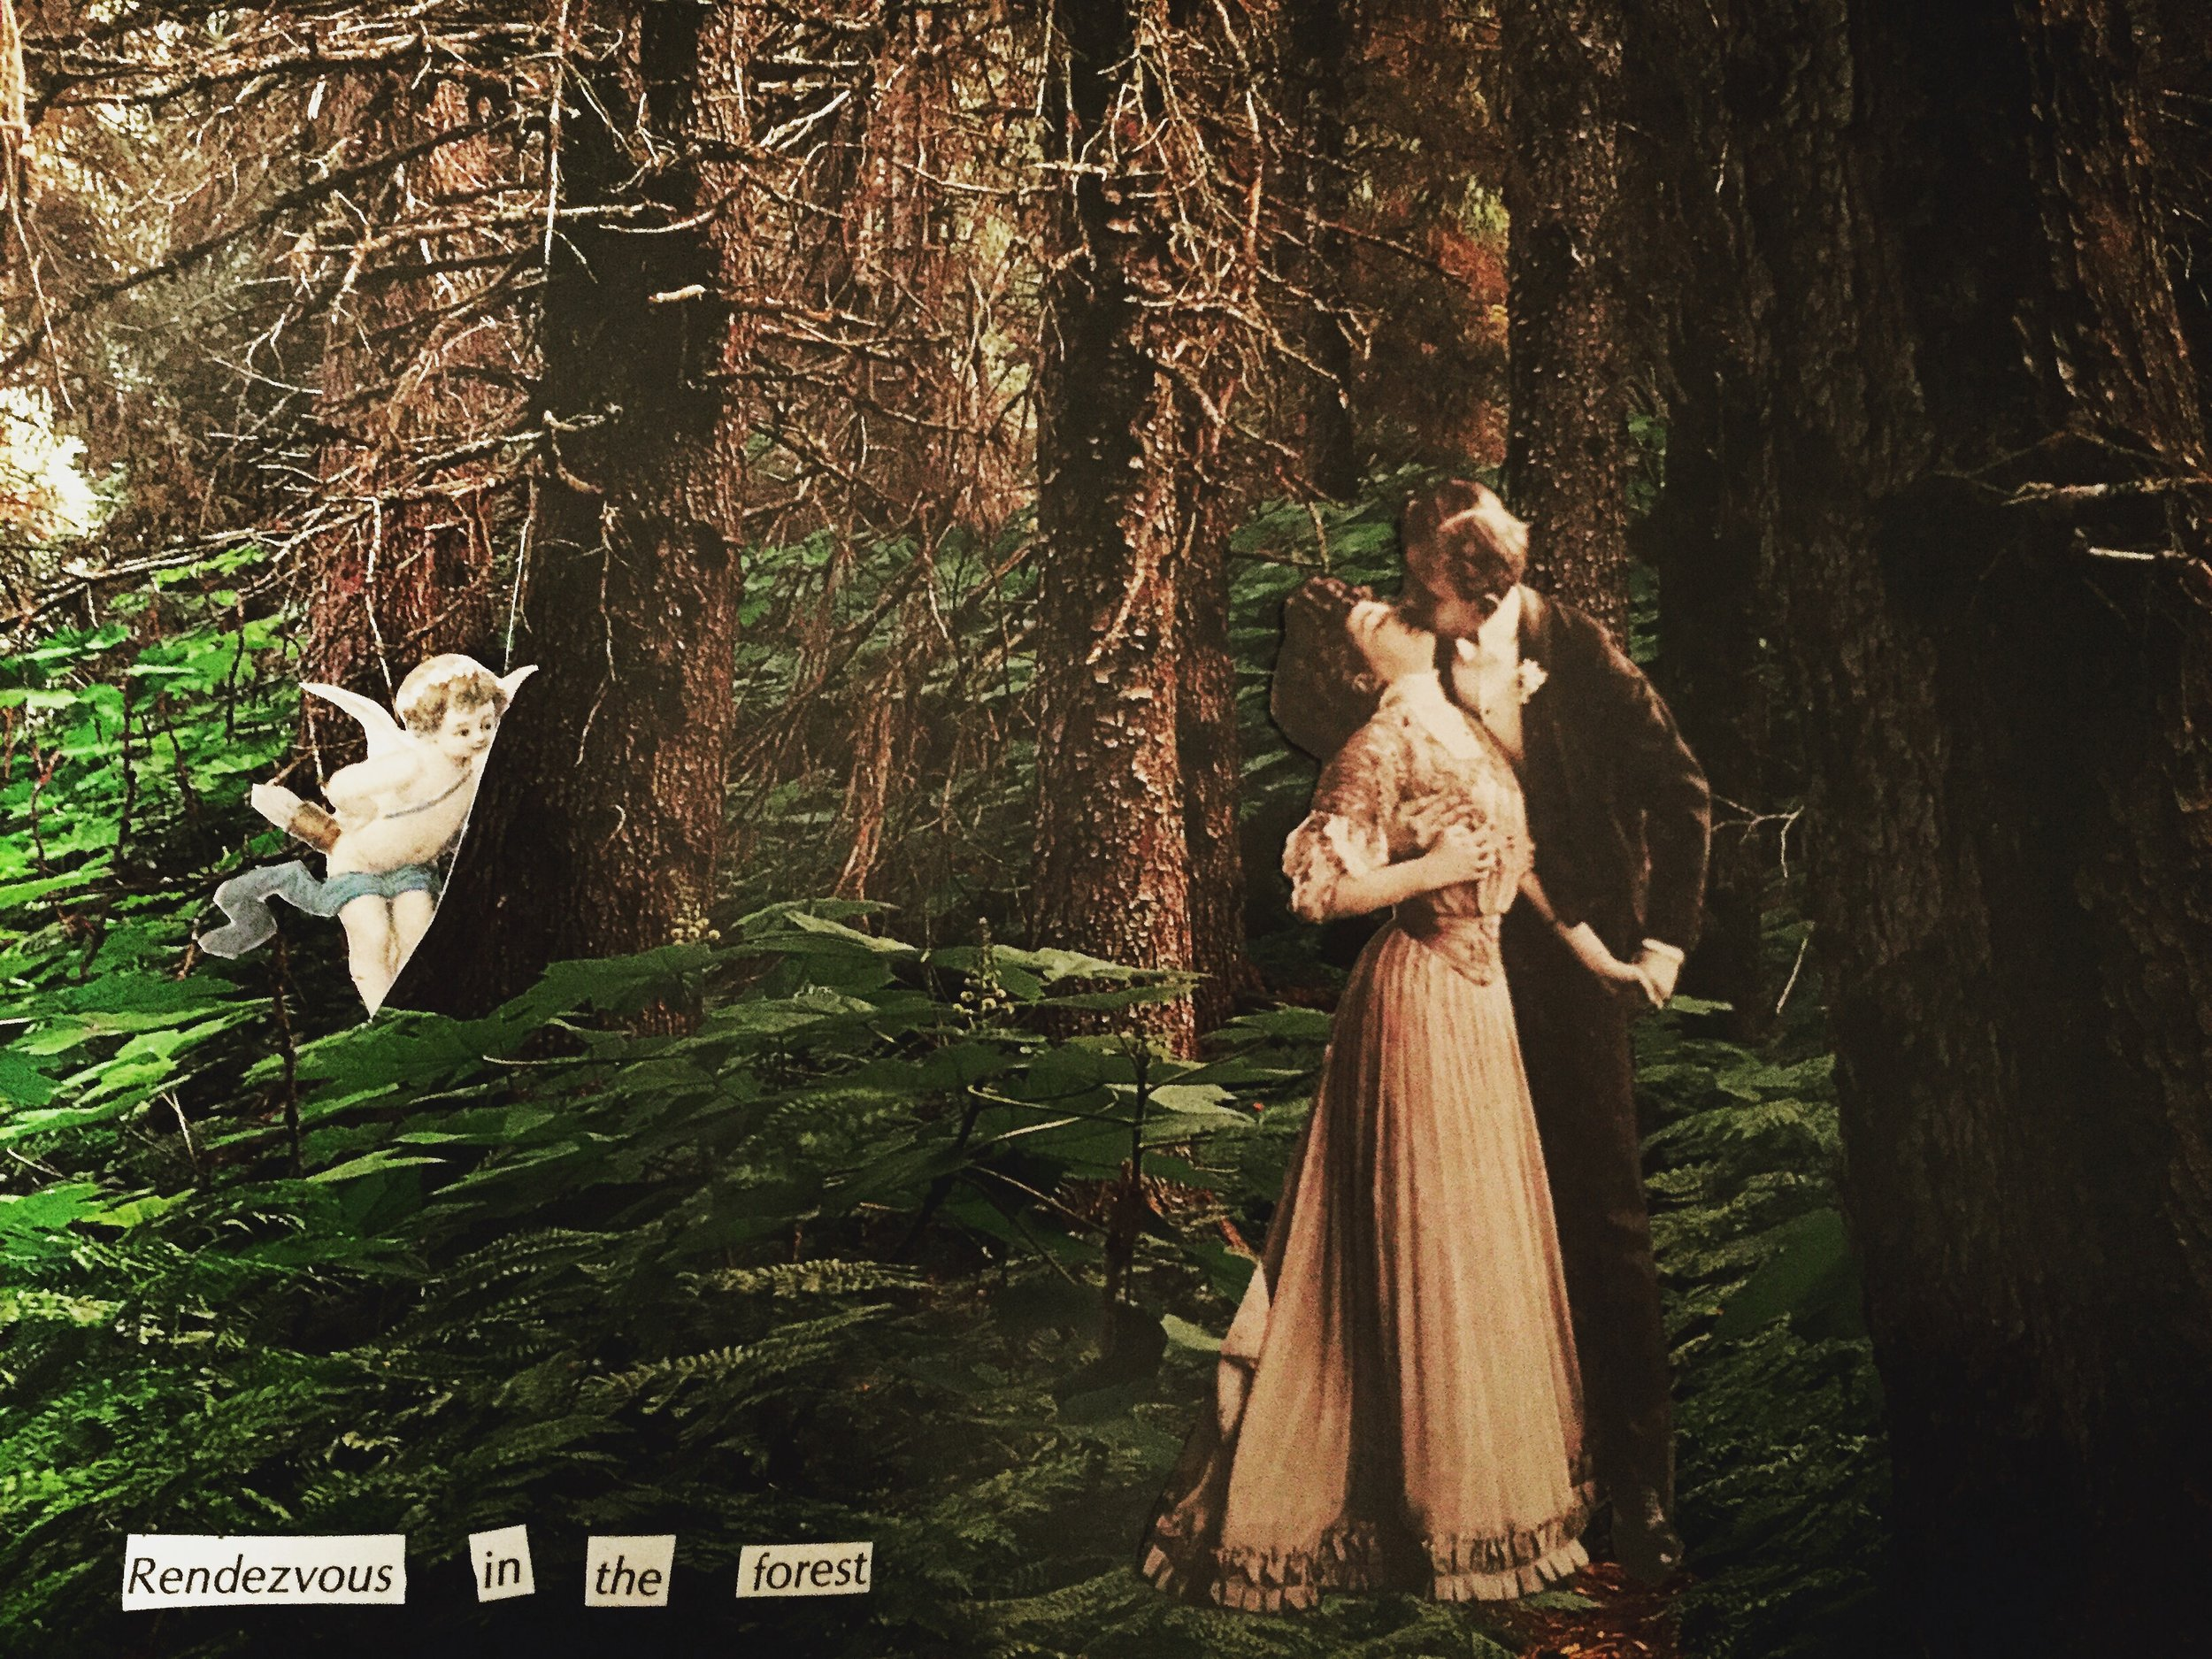 Rendezvous in the forest by Joan Pope (sexdeathrebirth)